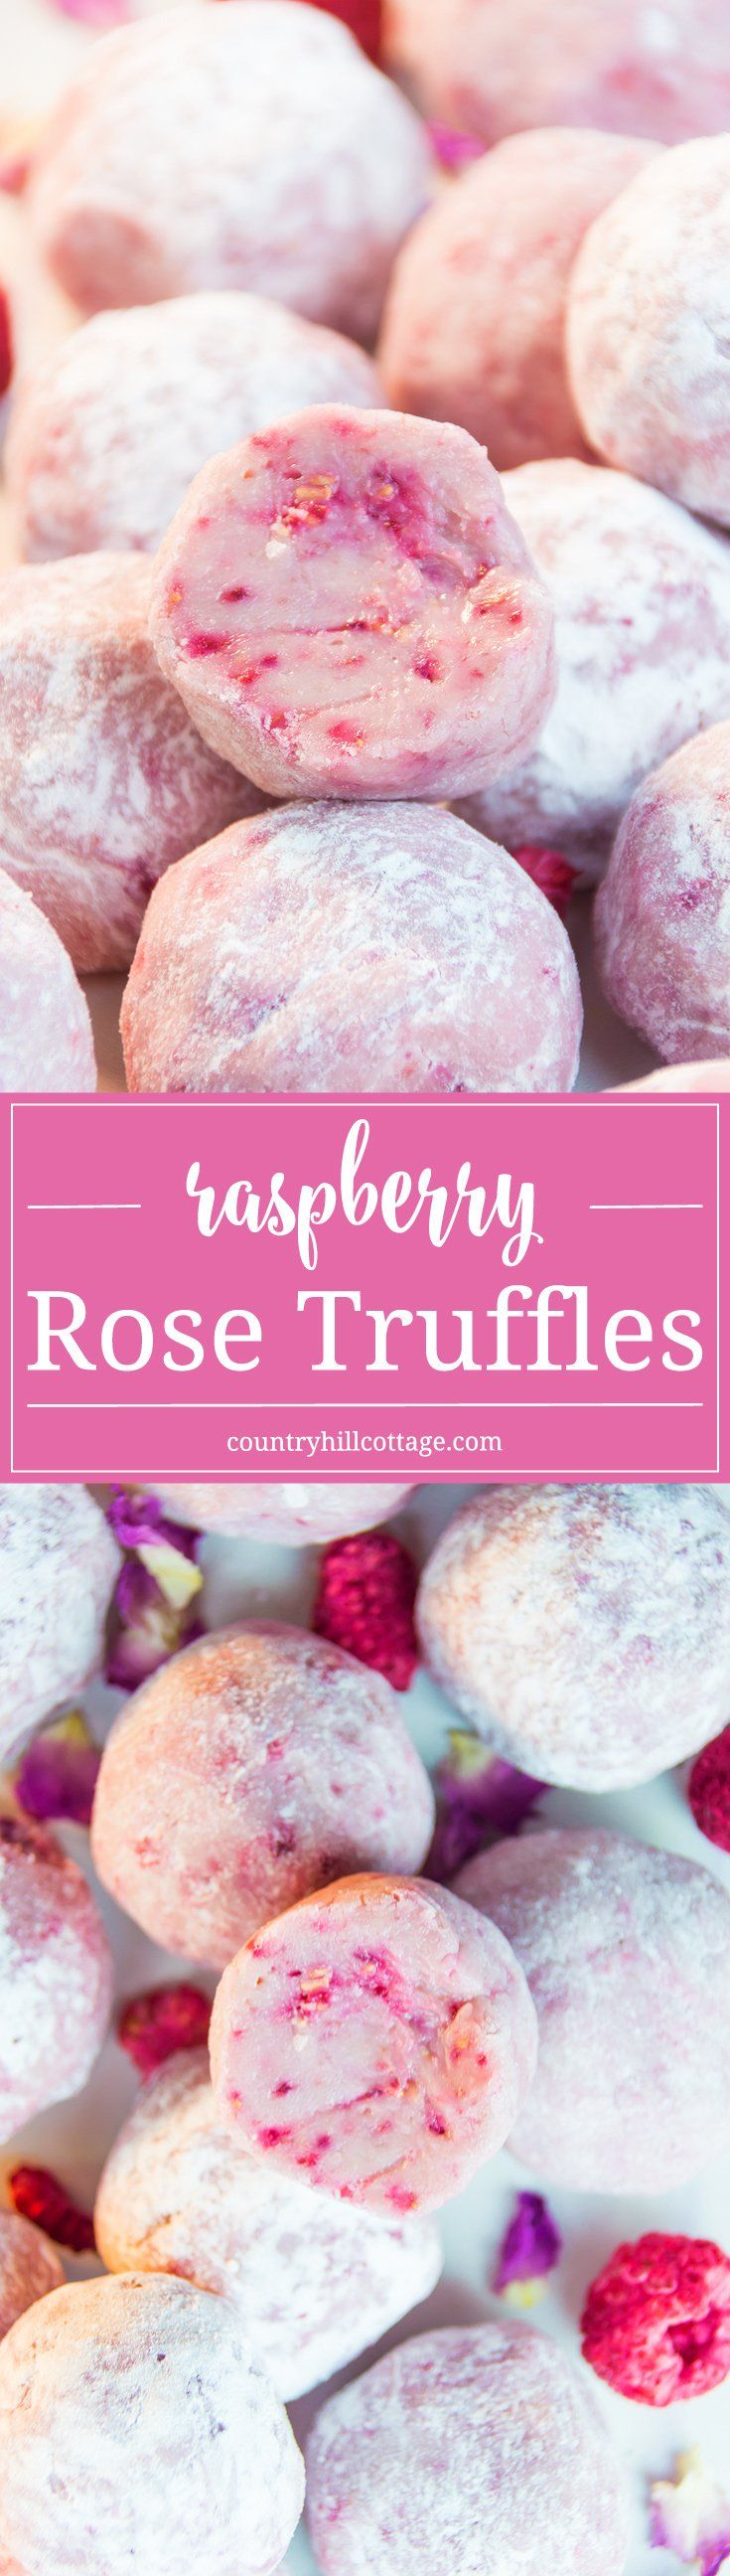 Raspberry Rose Truffles and Cute Favour Boxes #freezedriedraspberries